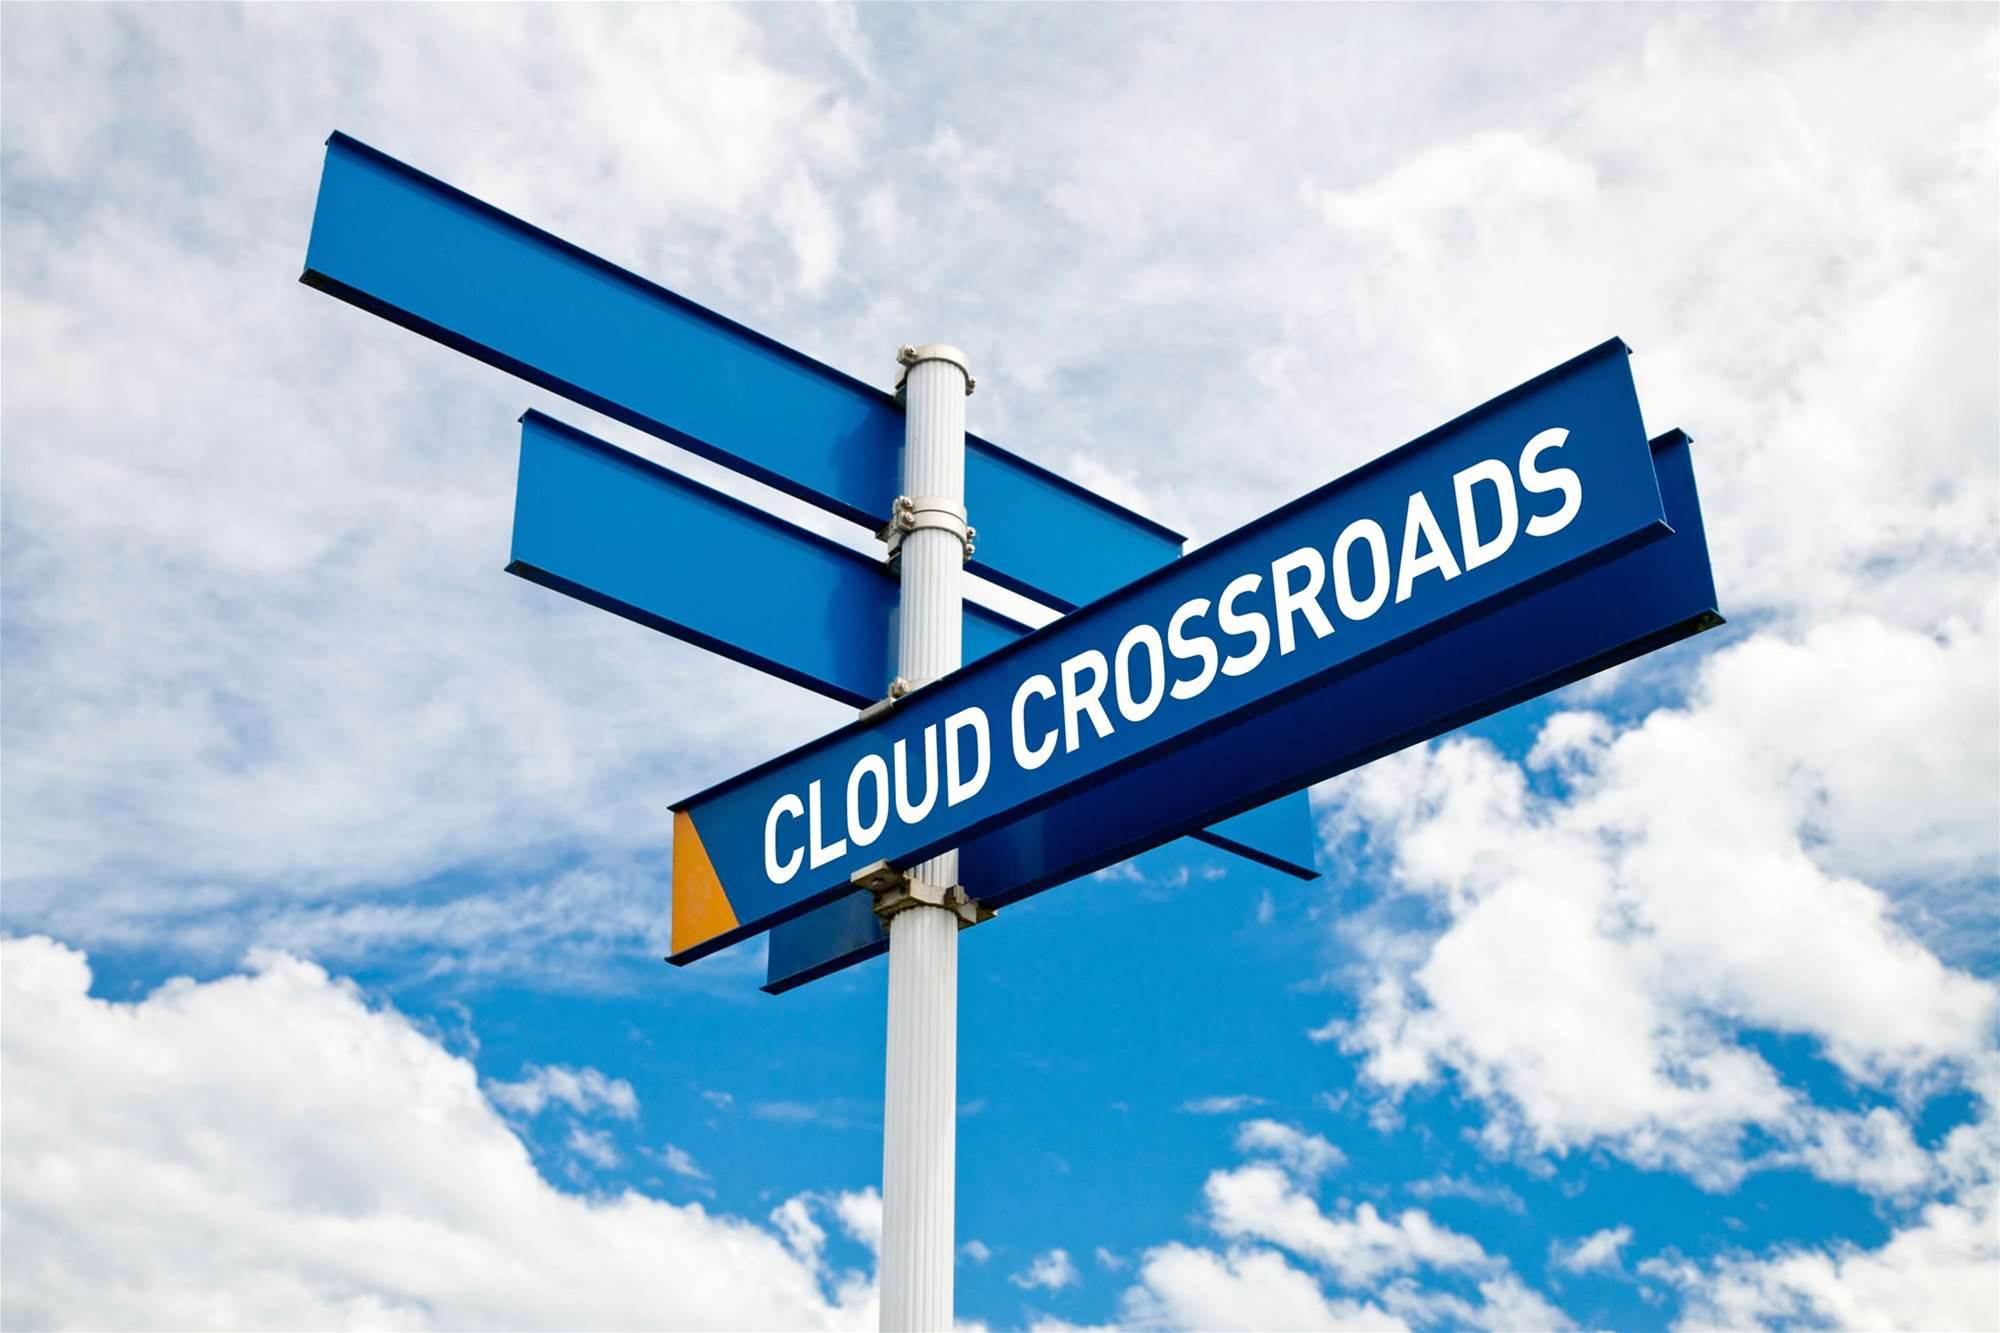 Cloud Crossroads